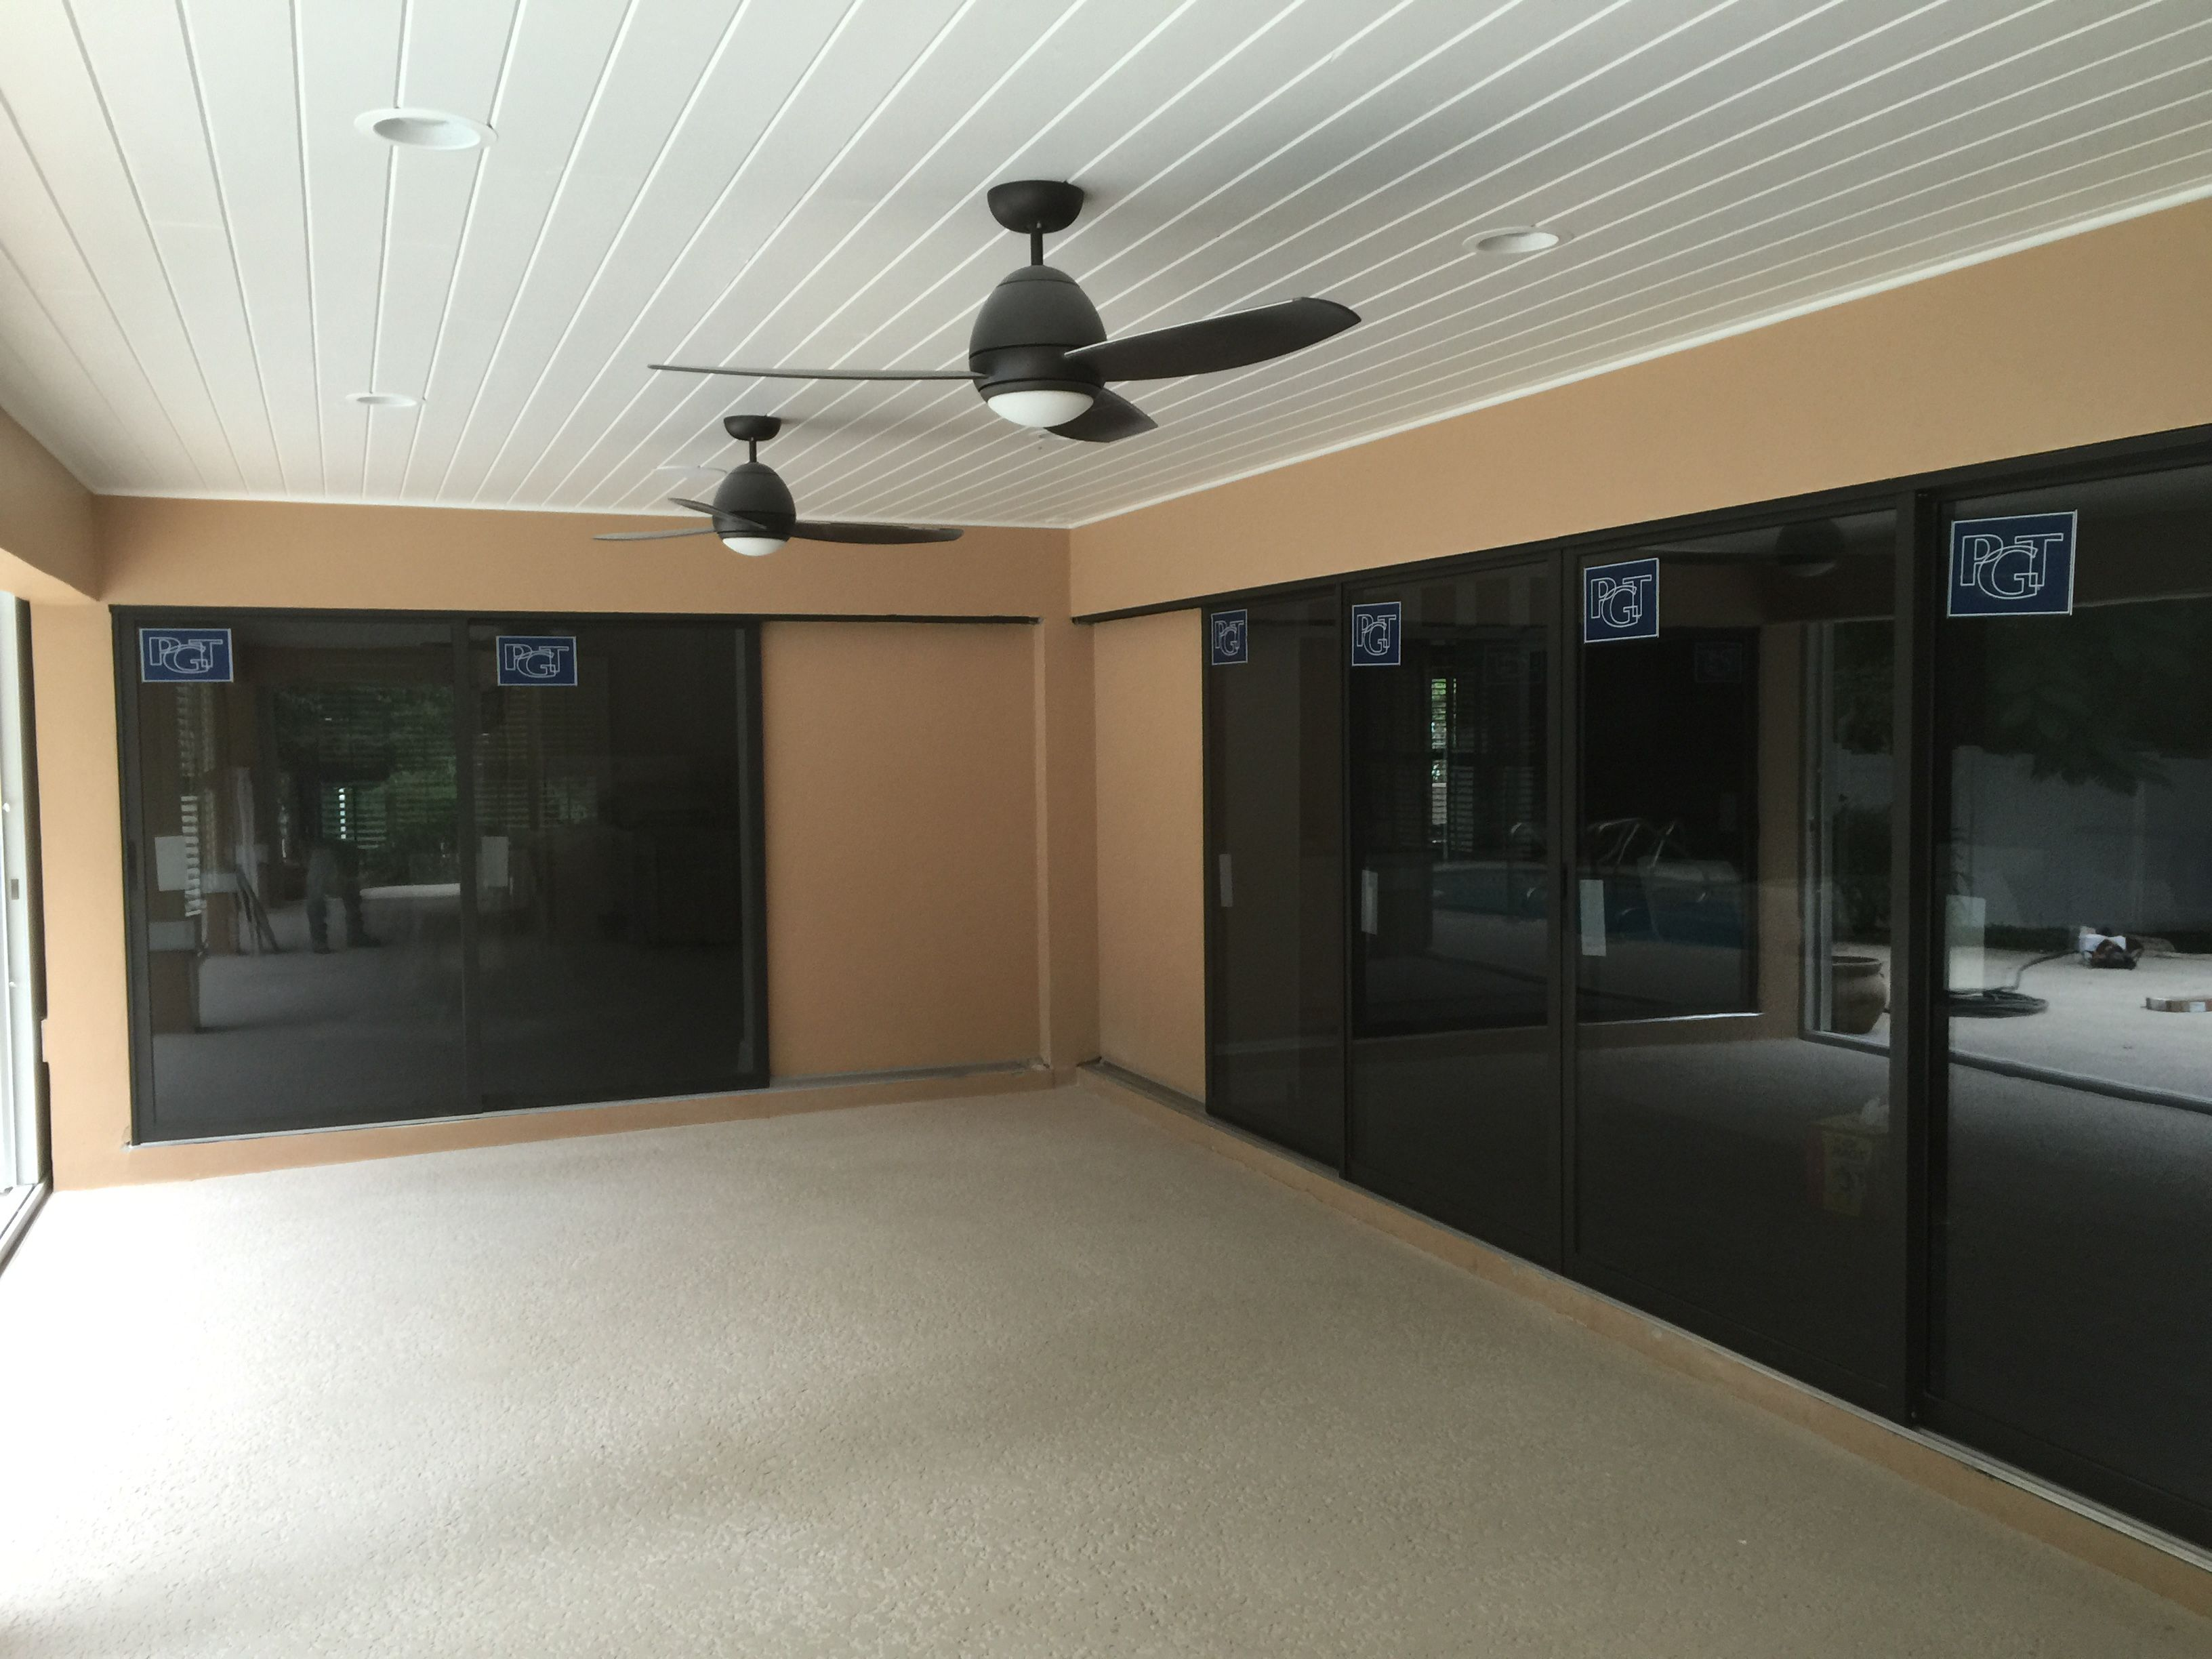 Pgt doors impact for Pgt vinyl sliding glass doors